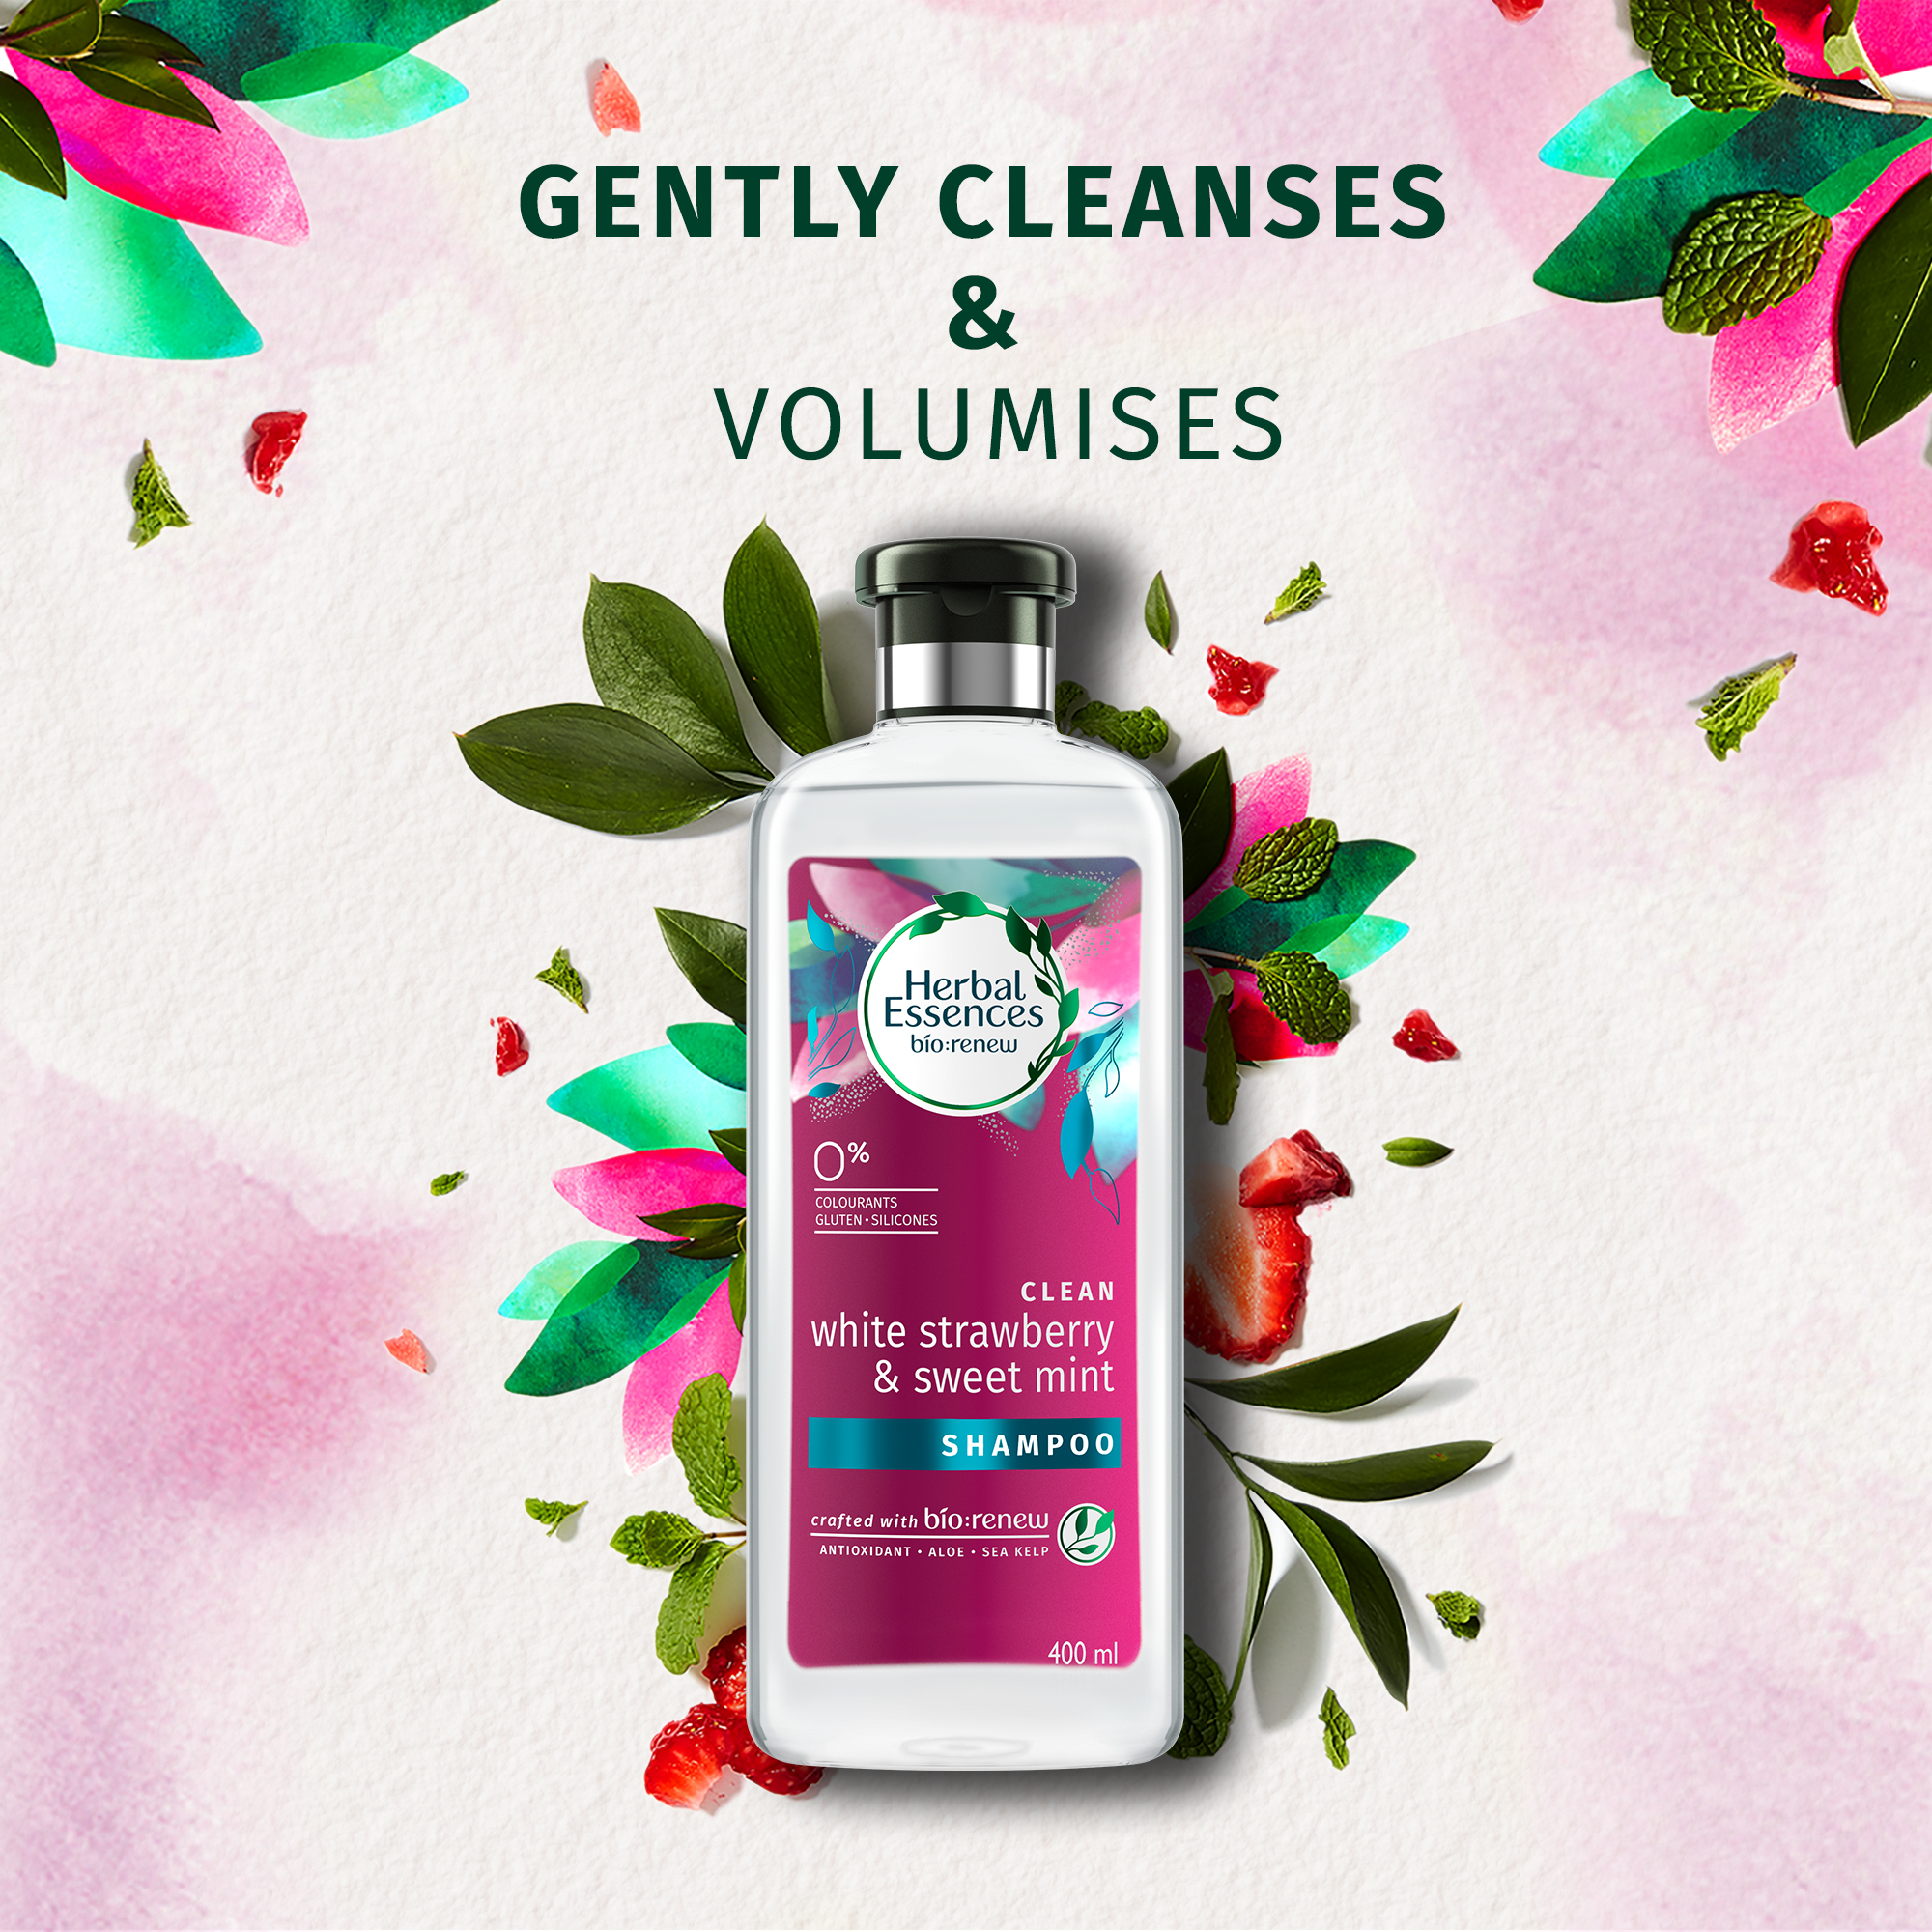 Herbal Essences Bio:Renew White Strawberry & Sweet Mint Shampoo and Conditioner Combo Box, 400 ml + 400 ml